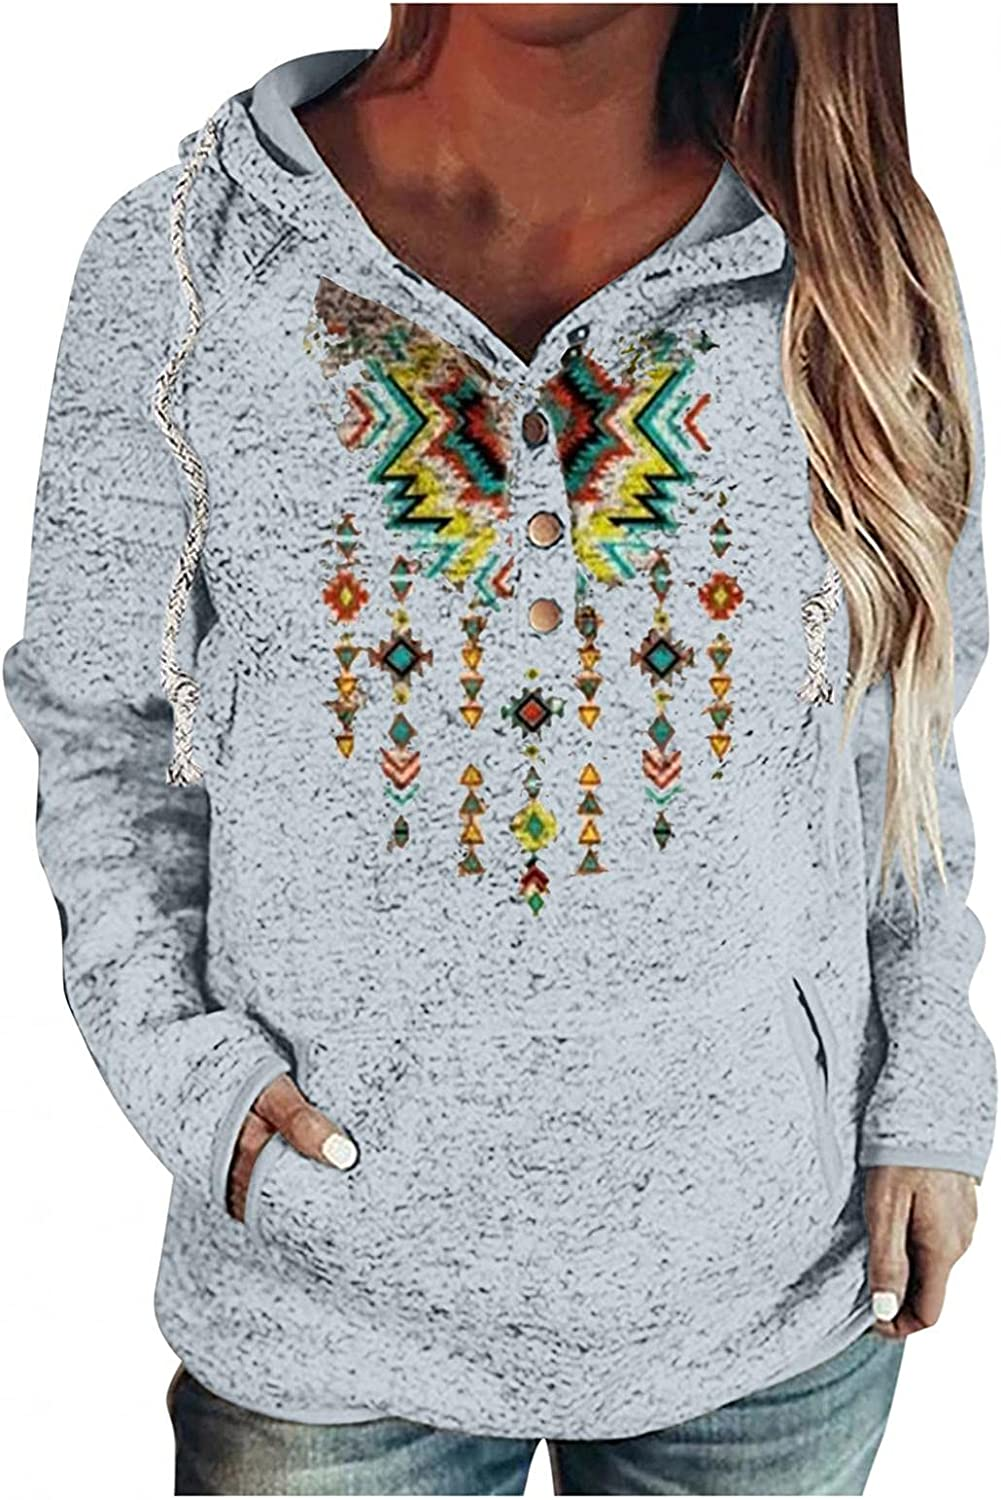 UOCUFY Hoodies for Women, Womens Casual Long Sleeve Sweatshirts Pullover Button Down Drawstring Hoodies with Pockets